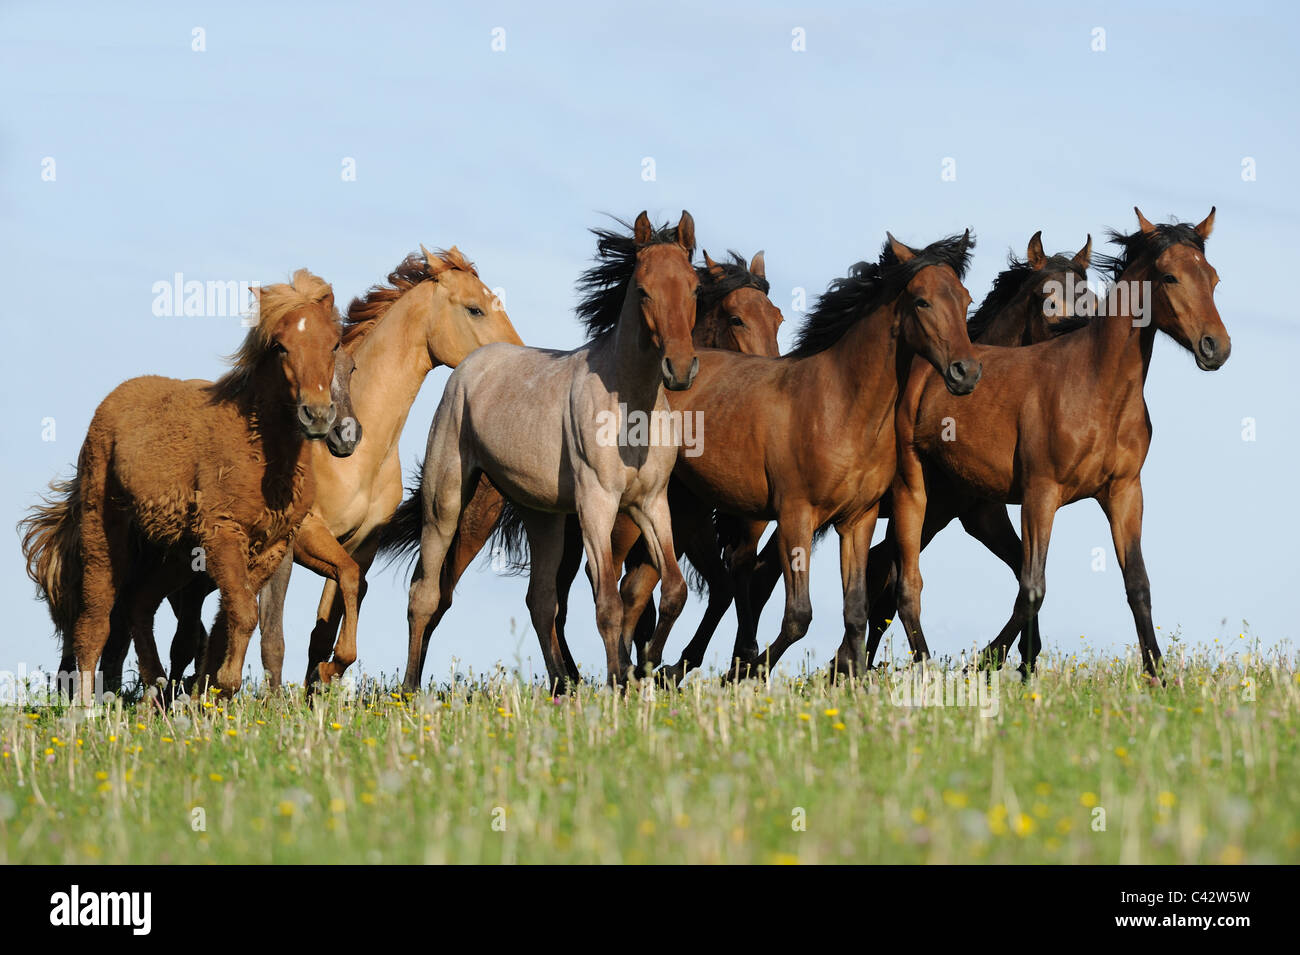 Mangalarga Marchador and Icelandic Horse (Equus ferus caballus). Herd of young stallions trotting on a meadow. Germany. - Stock Image